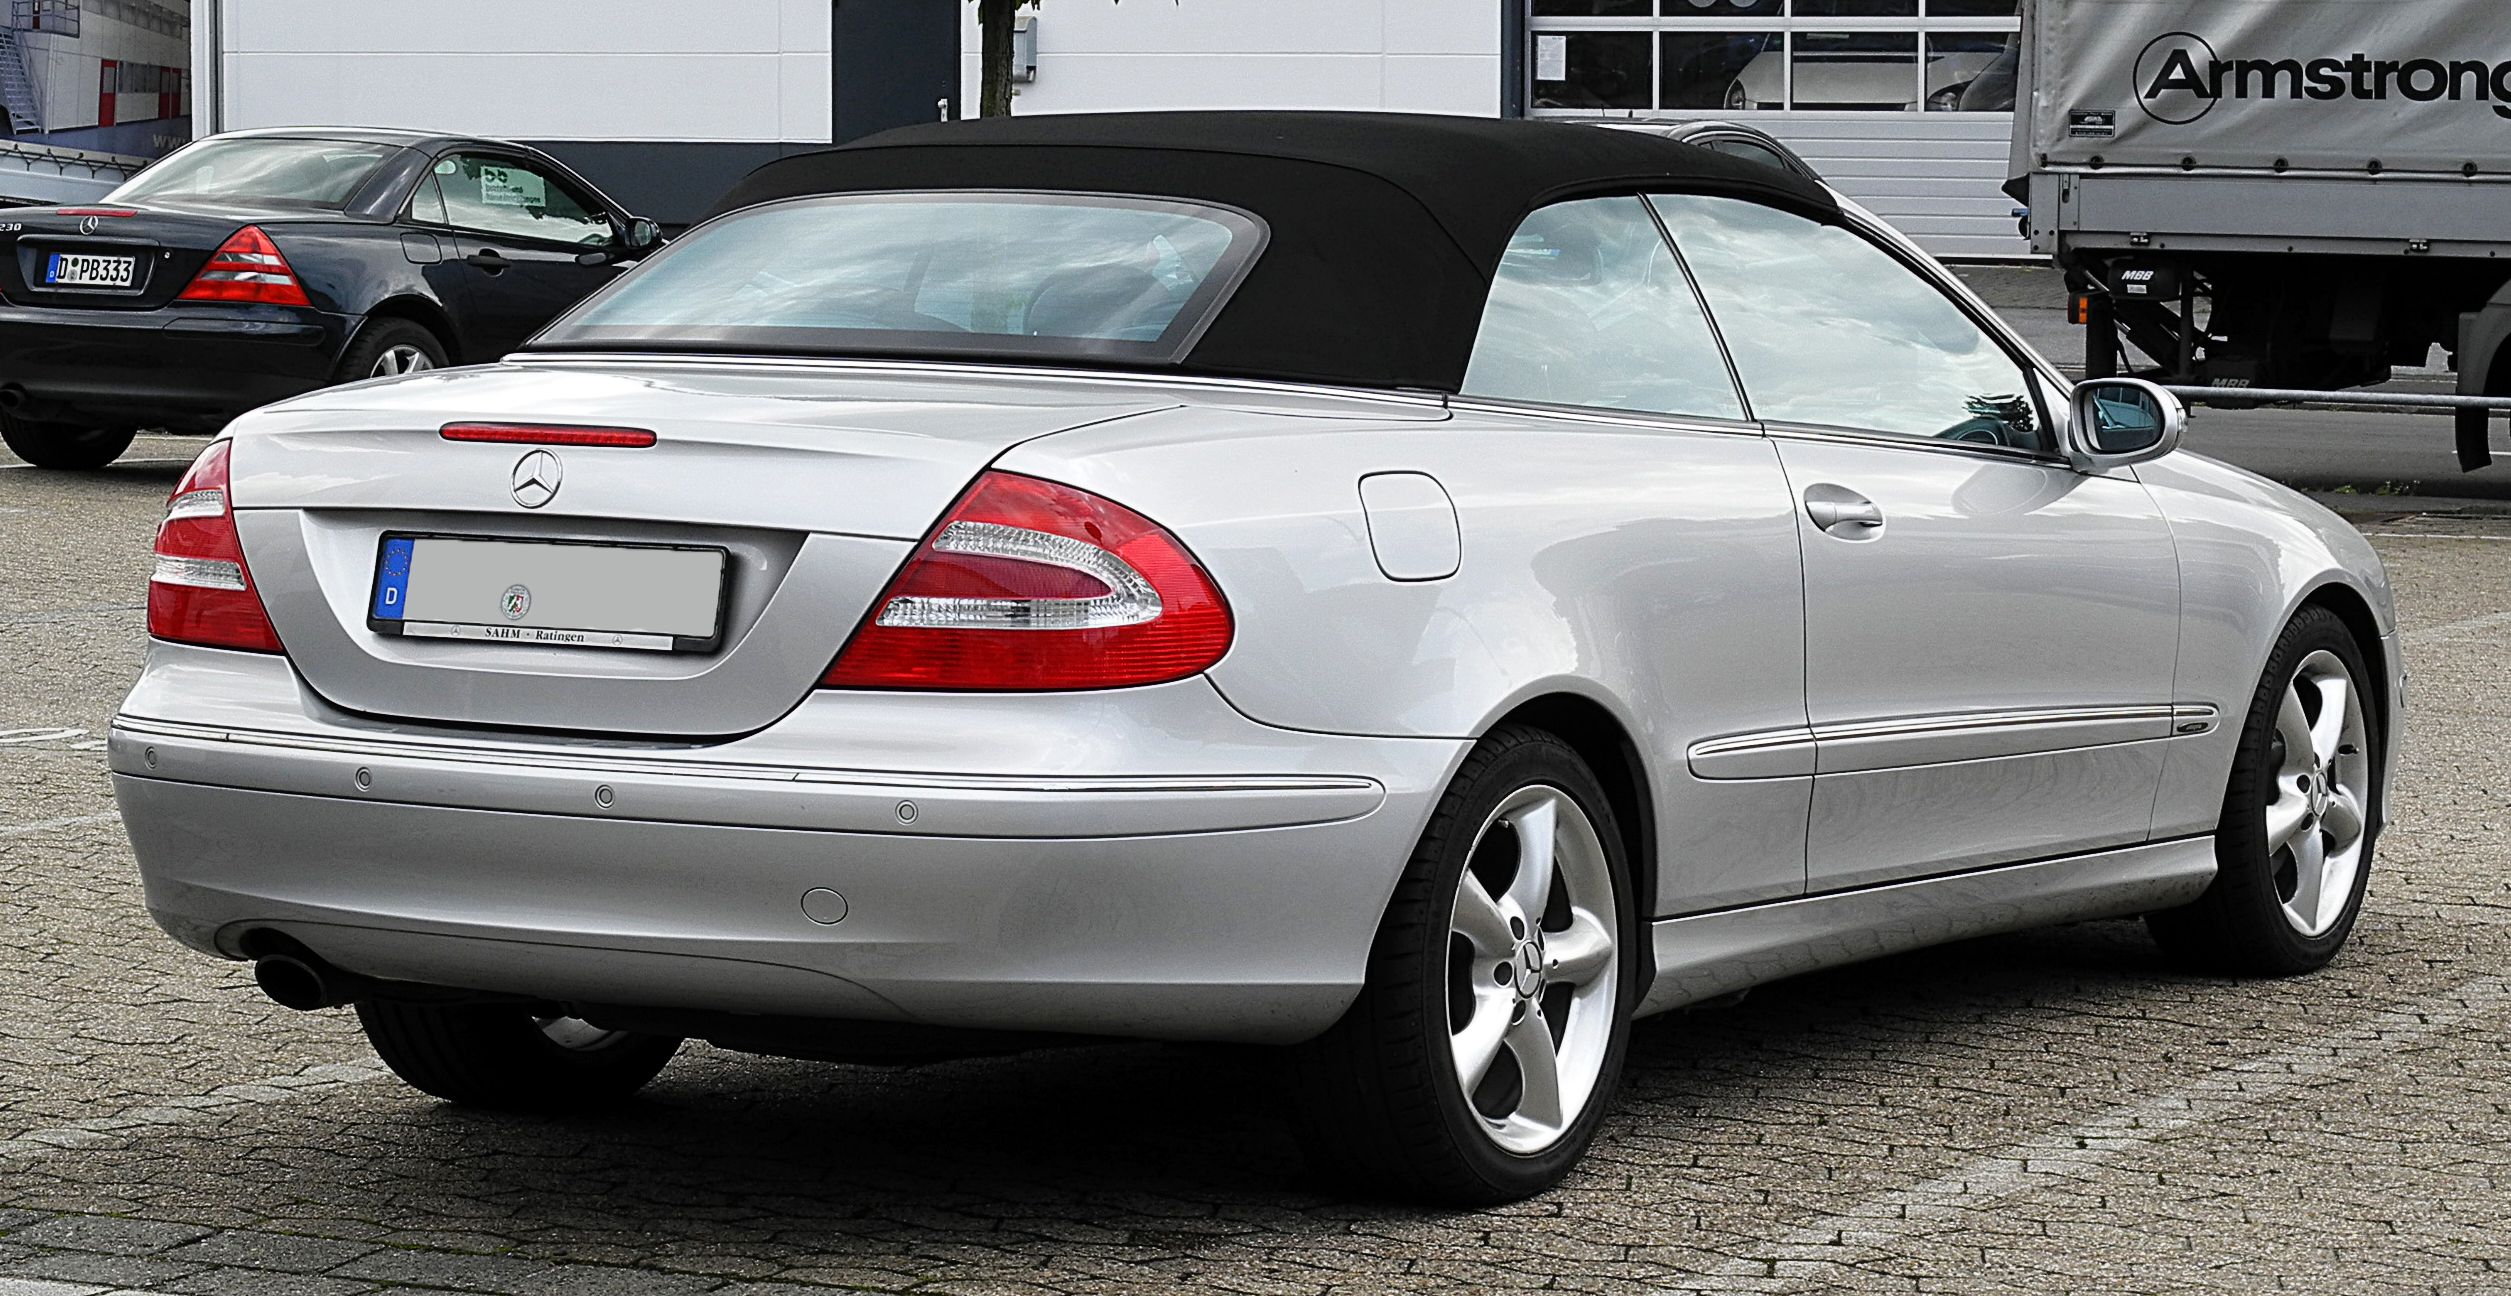 Image gallery 2014 mercedes benz clk 320 for 2003 mercedes benz clk 320